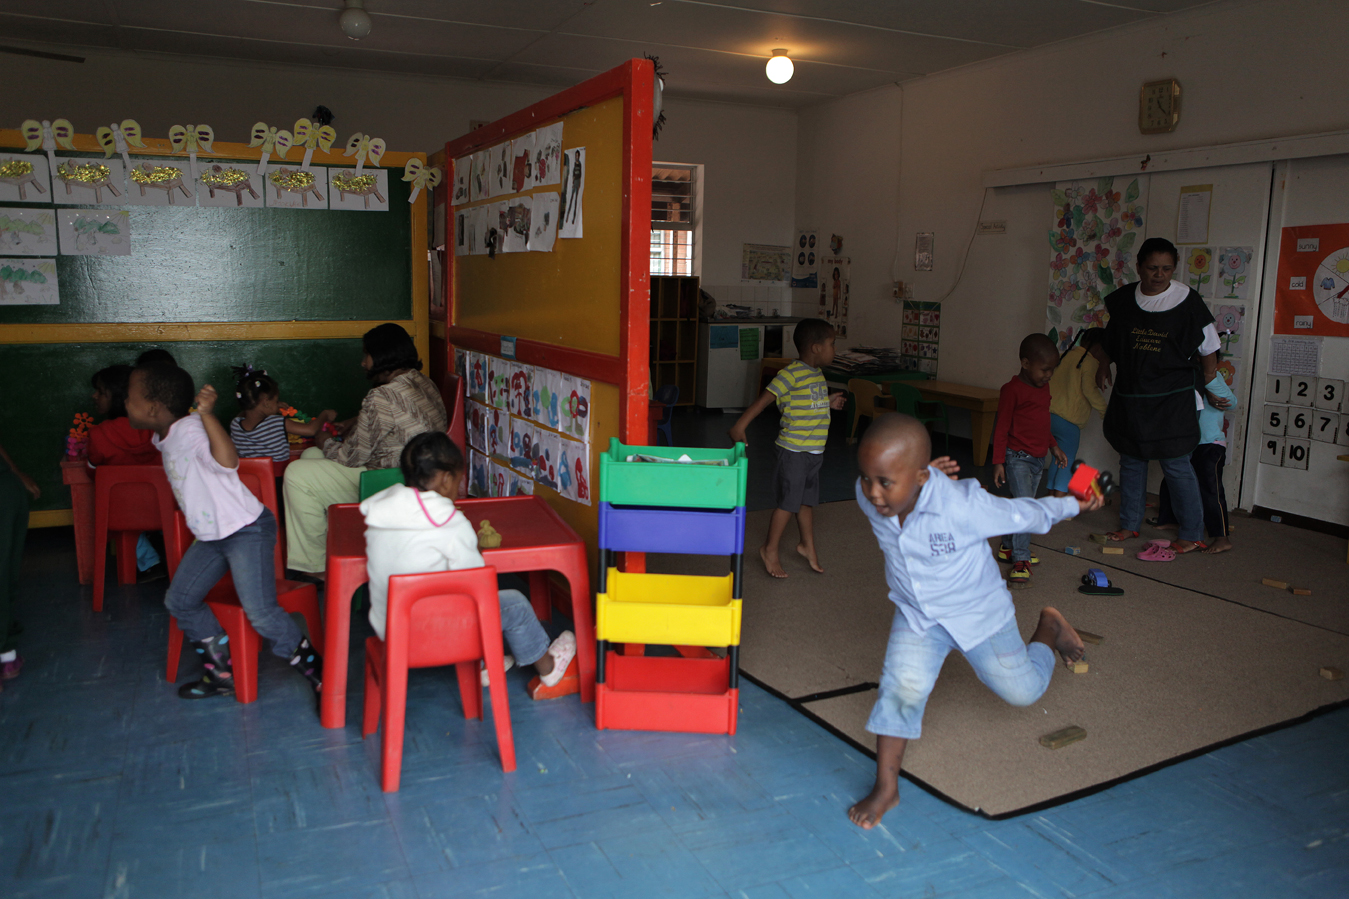 The Little David Educare Centre in Wentworth, a township on the southern side of Durban, in KwaZulu-Natal province. Over 92% of preschool children in KwaZulu-Natal attend unregistered ECD centres (crèches). Save the Children, operating in KZN for over 50 years, recognised the need to support crèches in the area with better management skills and access to learning materials, as well as running the crèche forums and supporting crèches with registration to become ECD centres.